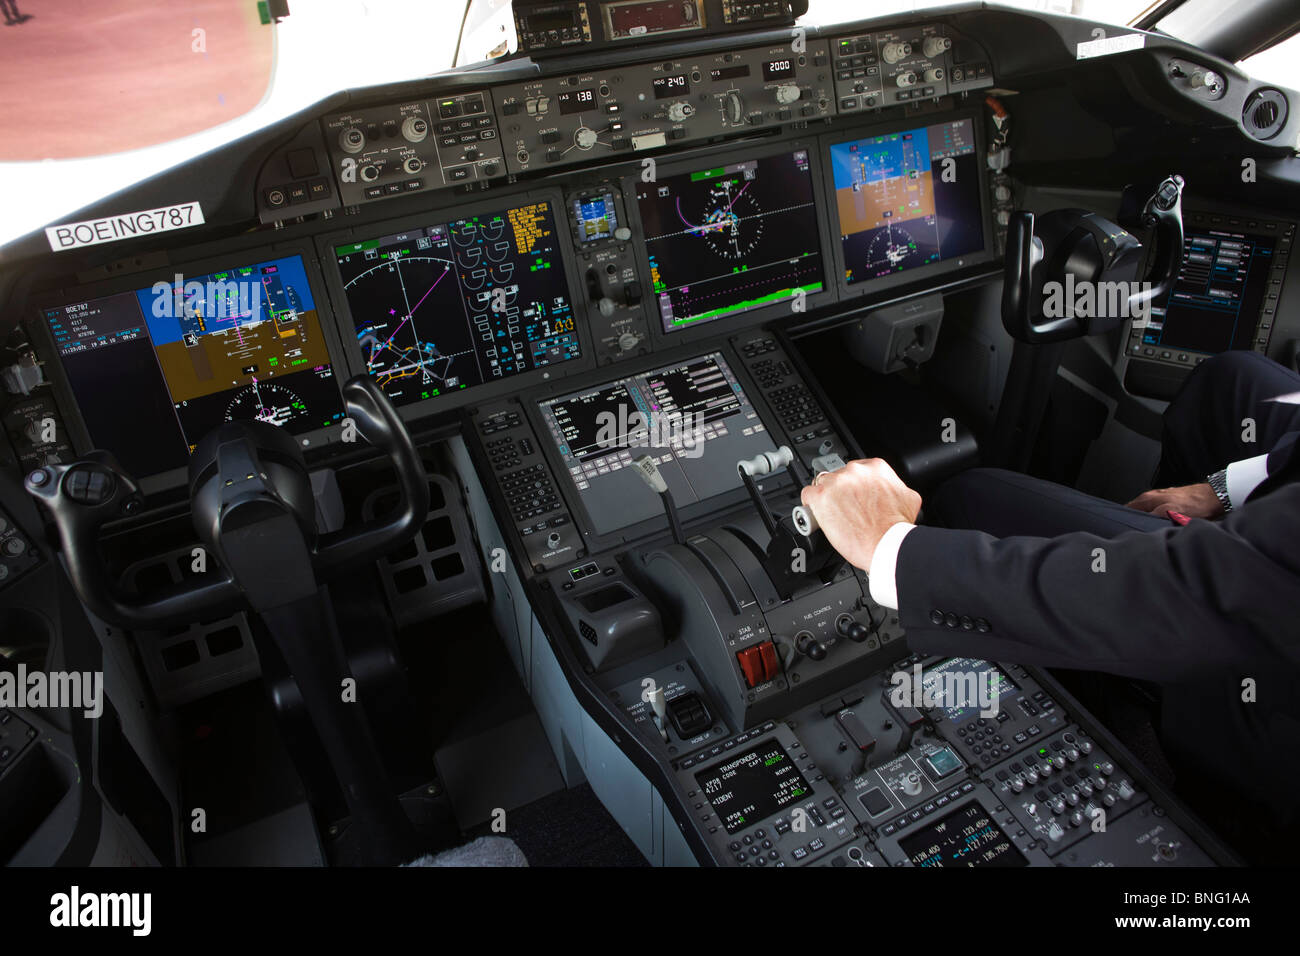 In glass cockpit of LCD screens, Boeing pilot with hands on throttles of 787 dreamliner - Stock Image